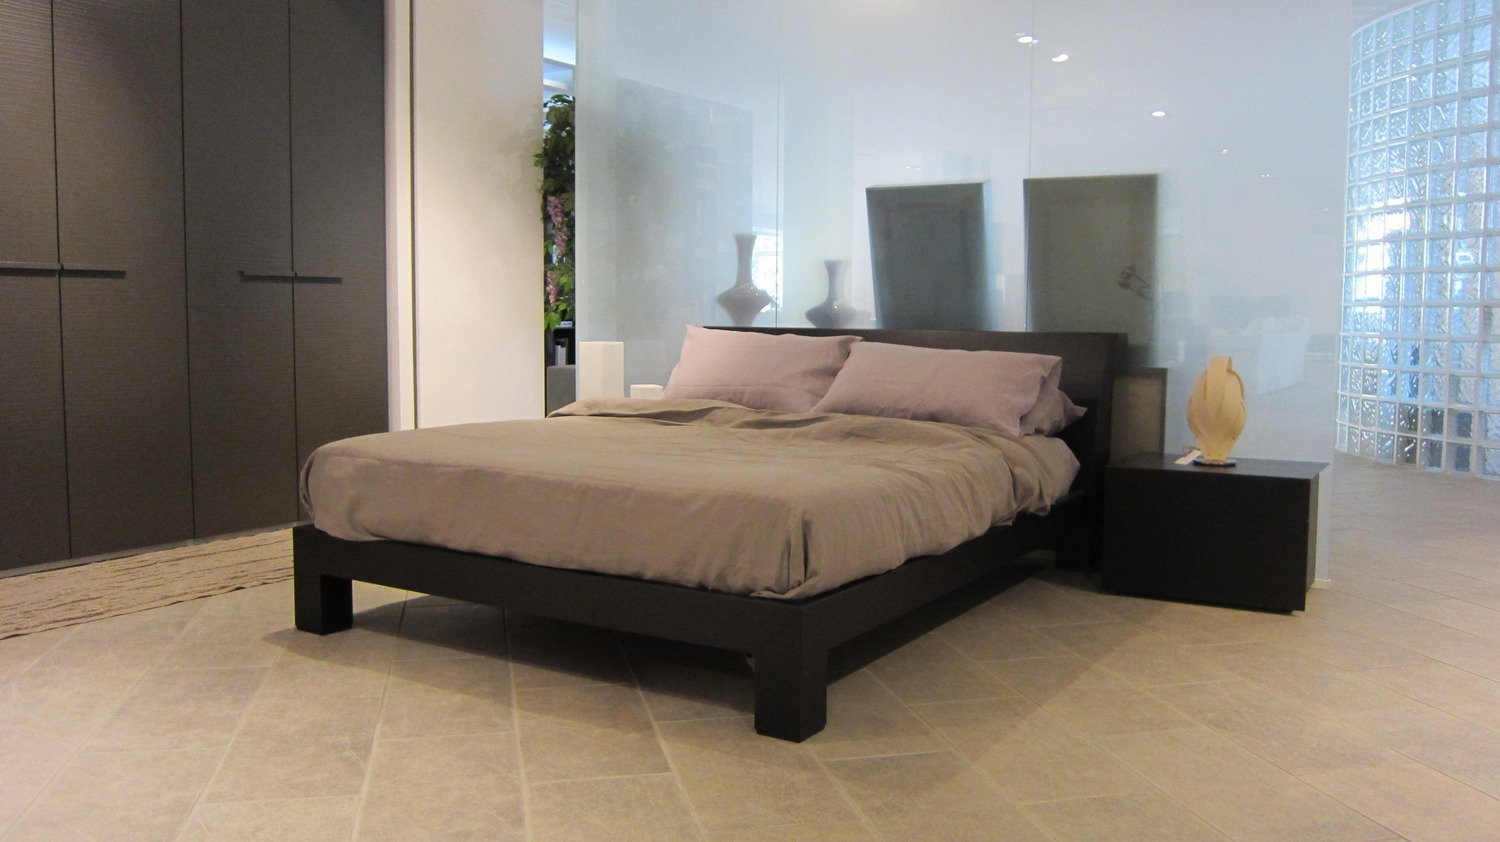 Letti poliform gallery of letto bruce with letti poliform excellent with letti poliform free - Letto park poliform ...